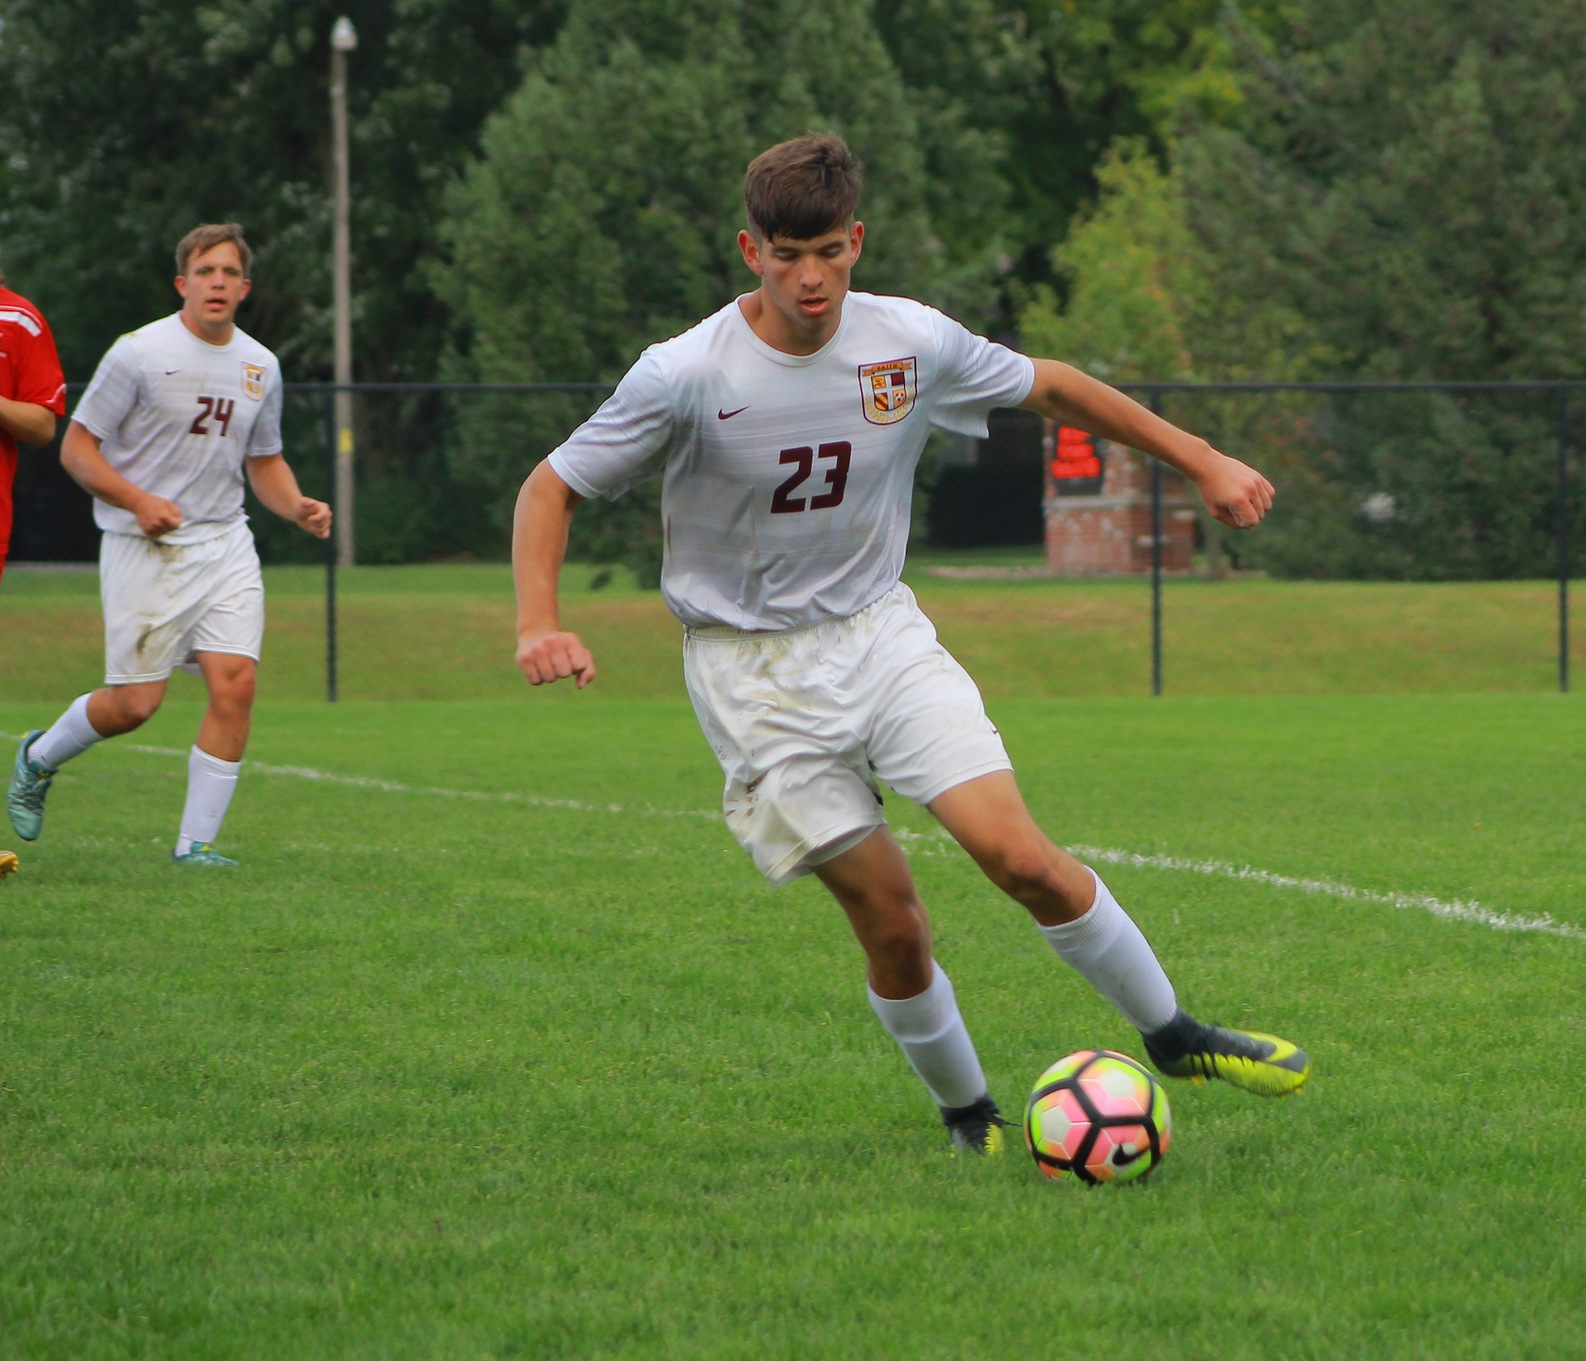 Daniel Guess led the Eagles with two assists in a win over Union College